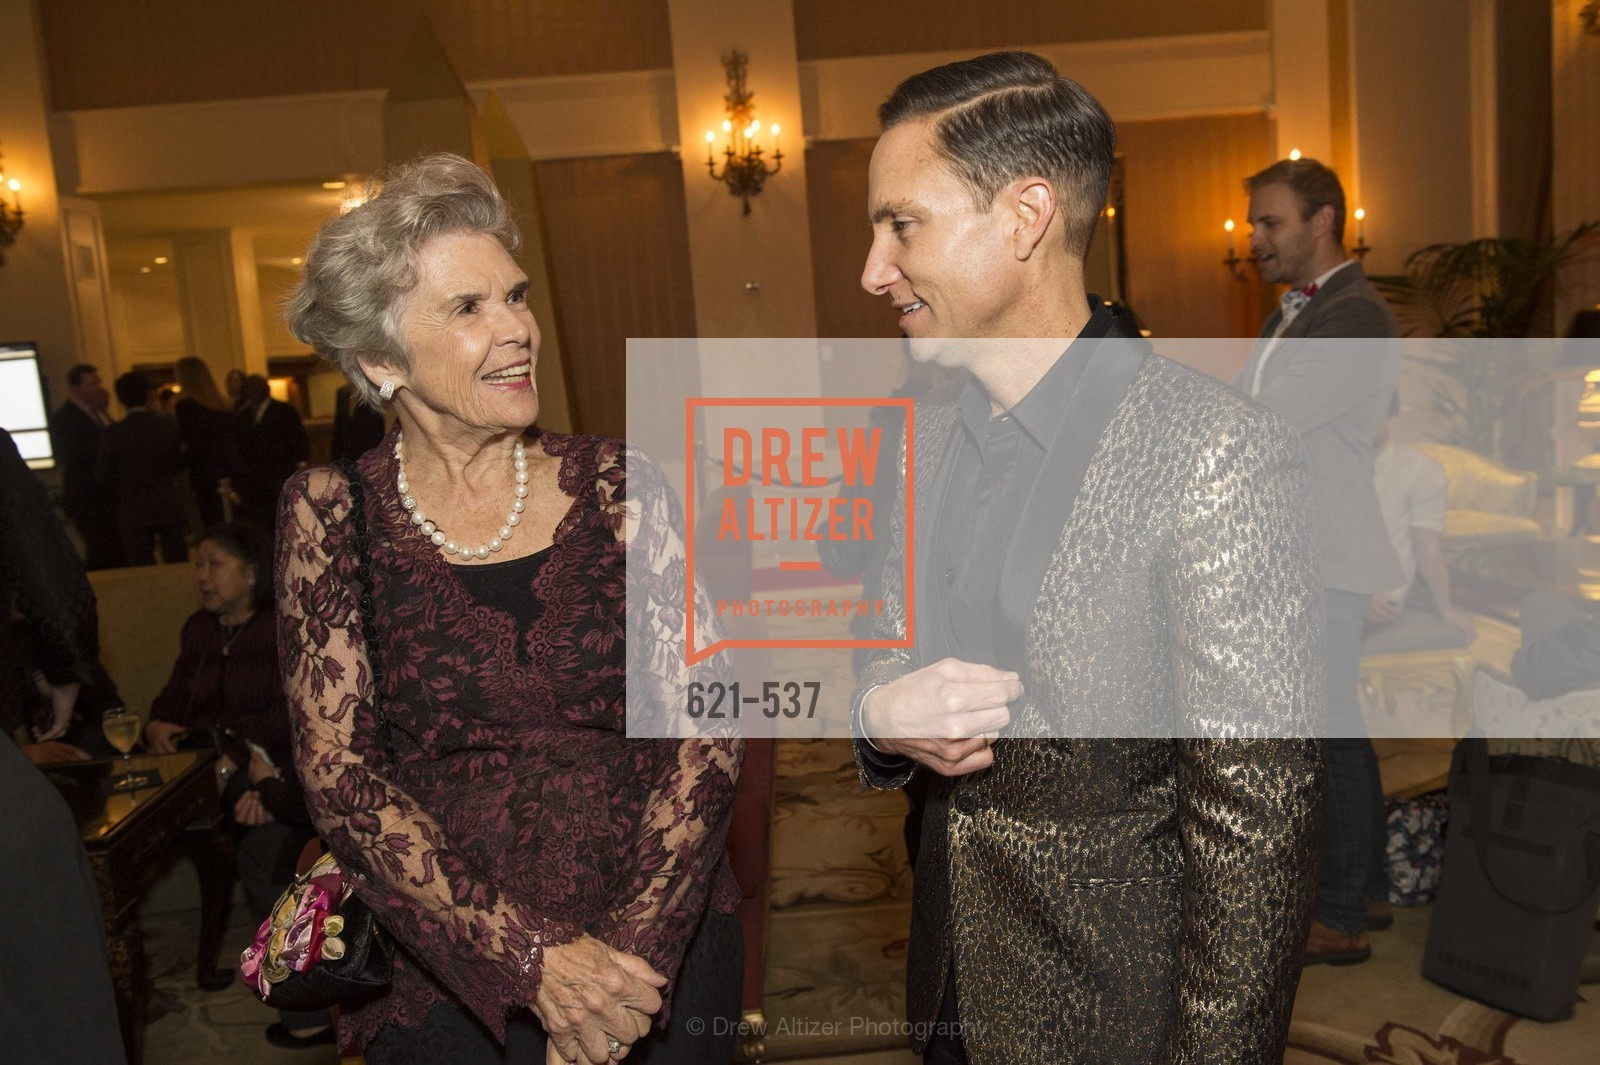 Cathy Brady, Ken Fulk, TOP OF THE MARK'S 75TH Anniversary Party, US, November 7th, 2014,Drew Altizer, Drew Altizer Photography, full-service agency, private events, San Francisco photographer, photographer california